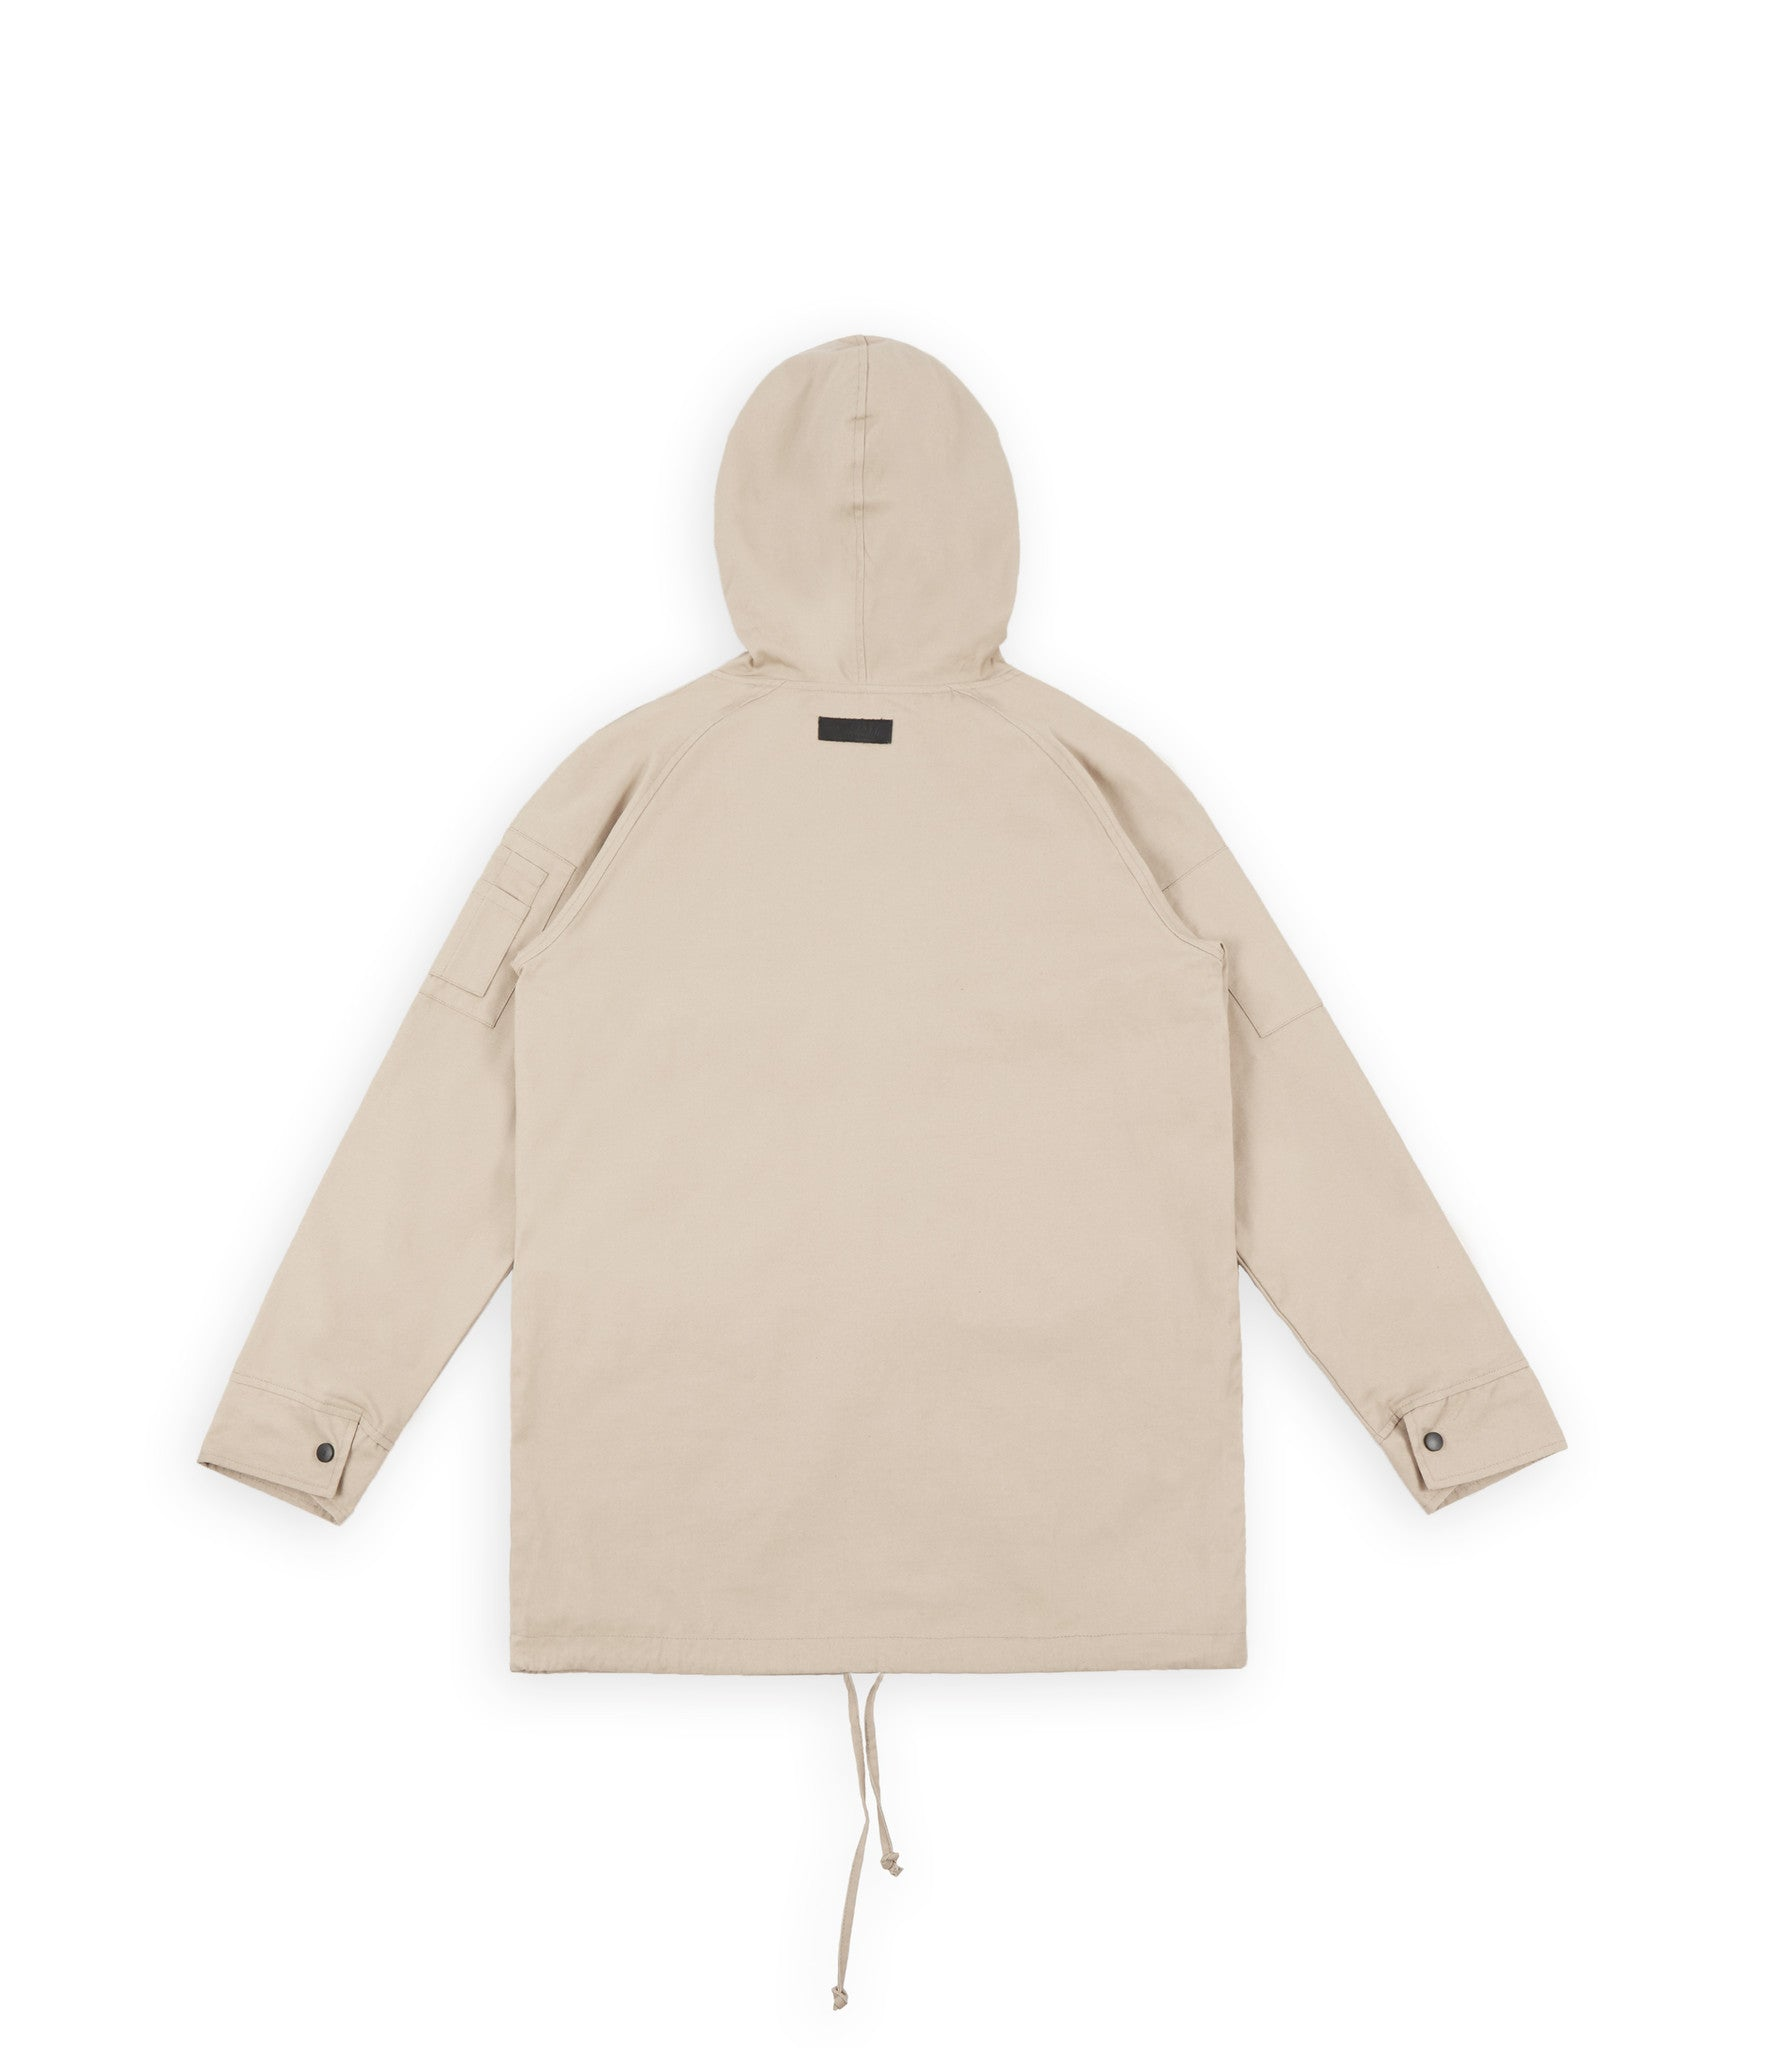 D22 Hooded Pullover Anorak  - Beige - underated london - underatedco - 3